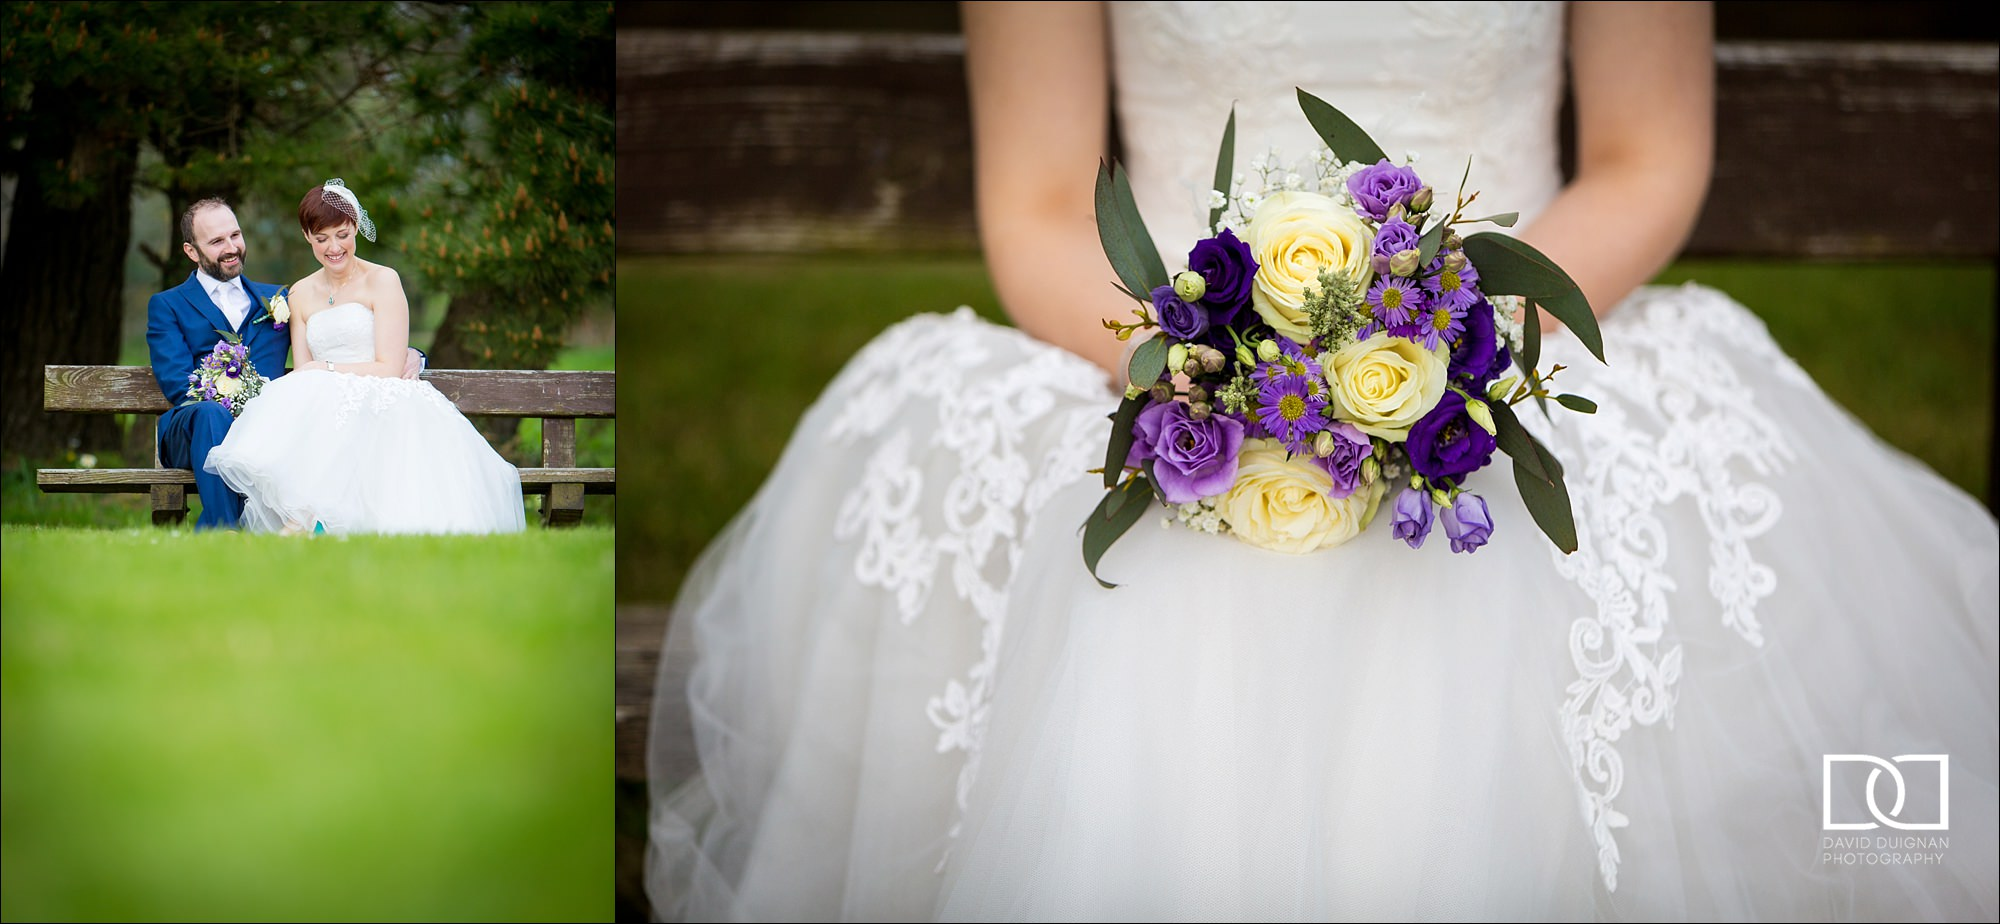 dublin wedding photographer david duignan photography horetown house wedding wexford Ireland 0022